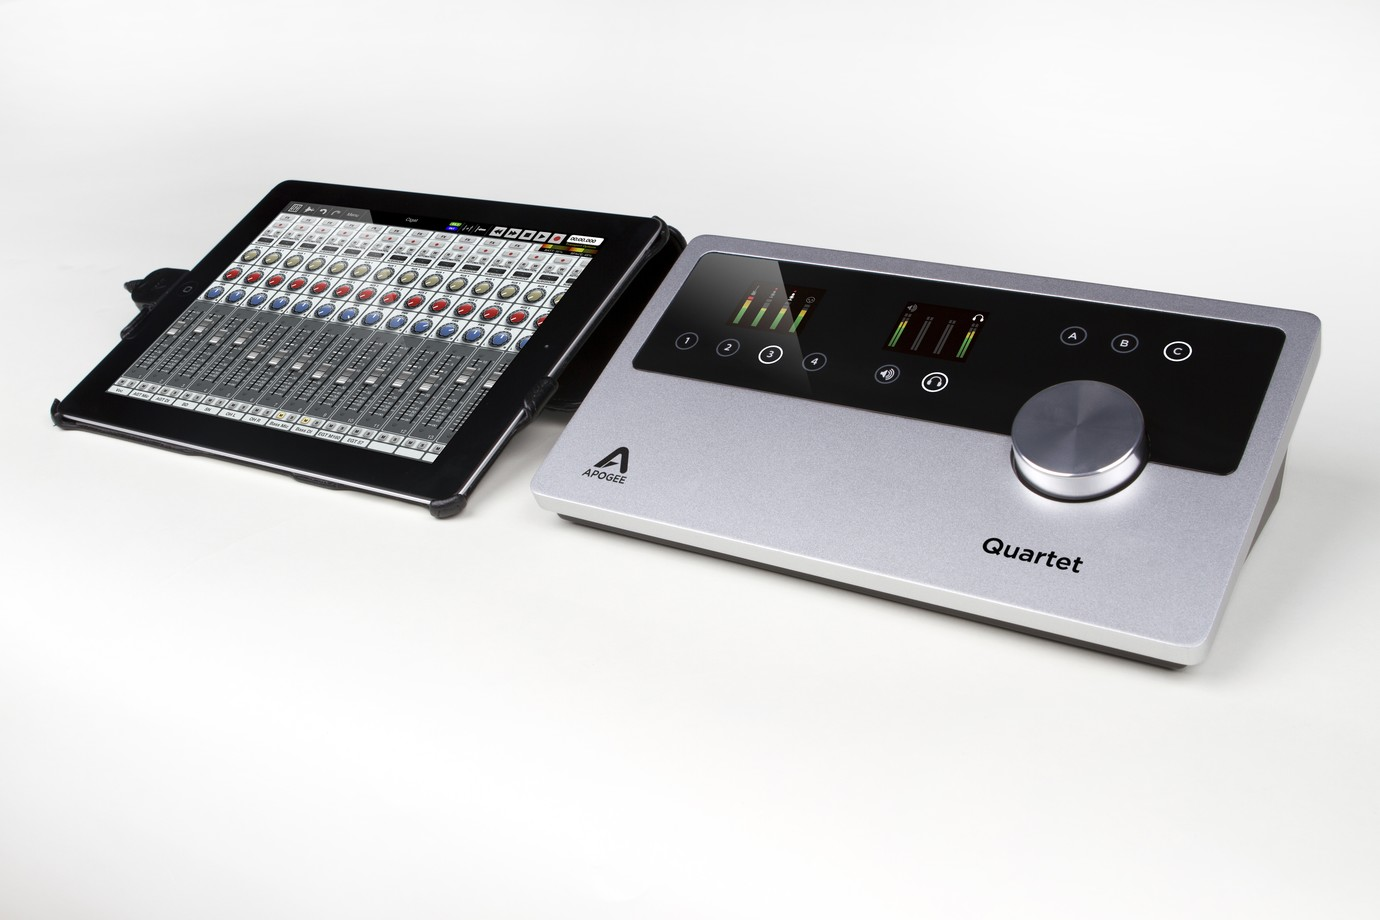 apogee one duet quartet audio interfaces updated with ipad mac support and more. Black Bedroom Furniture Sets. Home Design Ideas